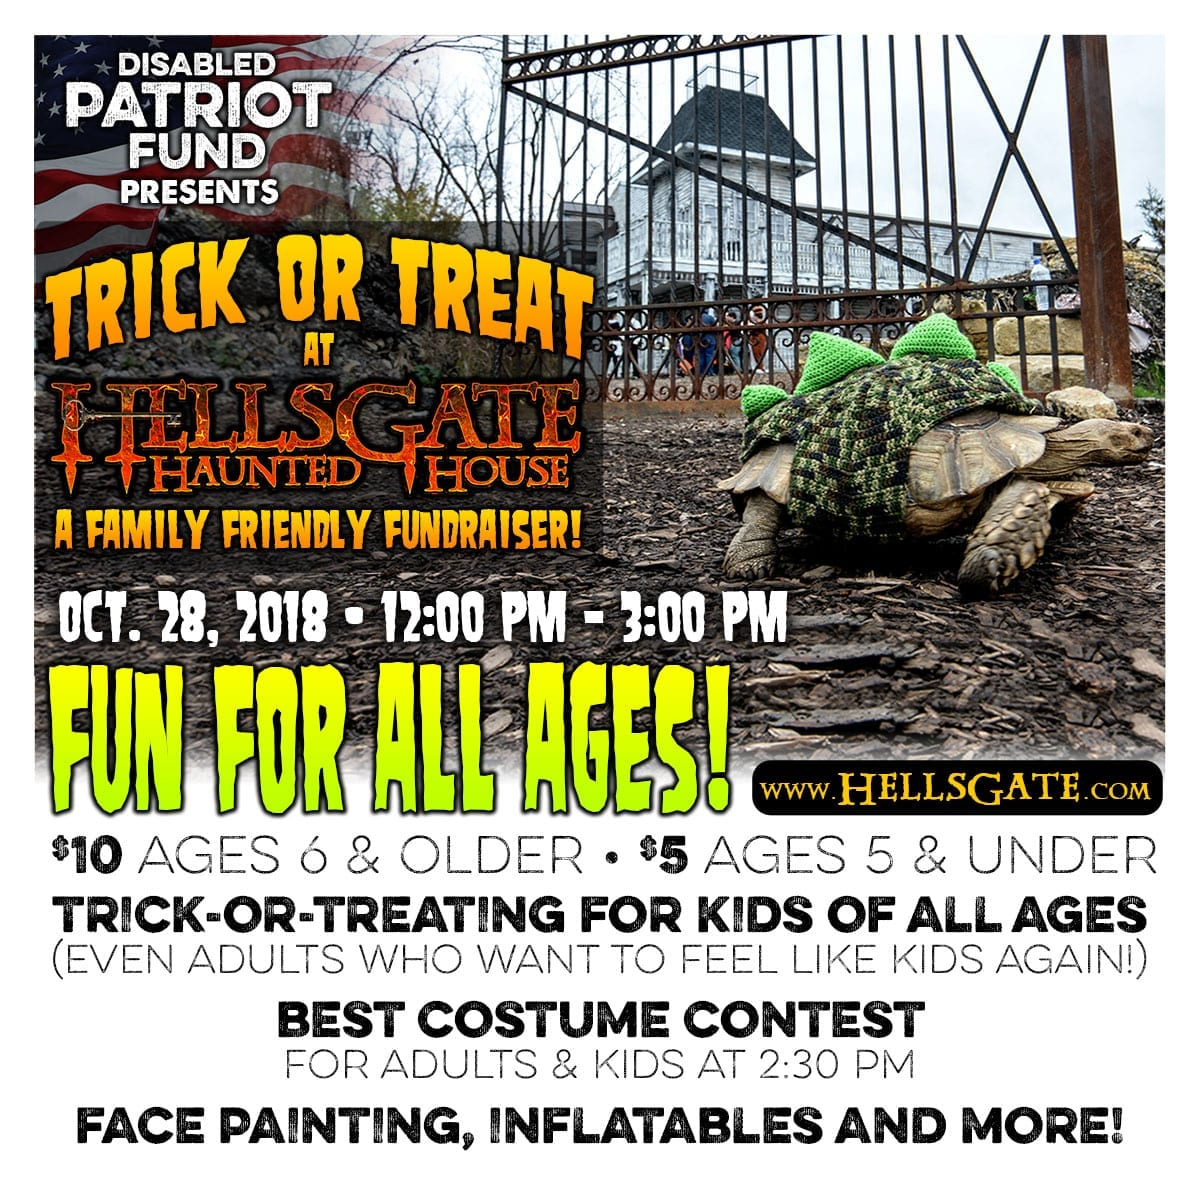 Trick or Treat at HellsGate